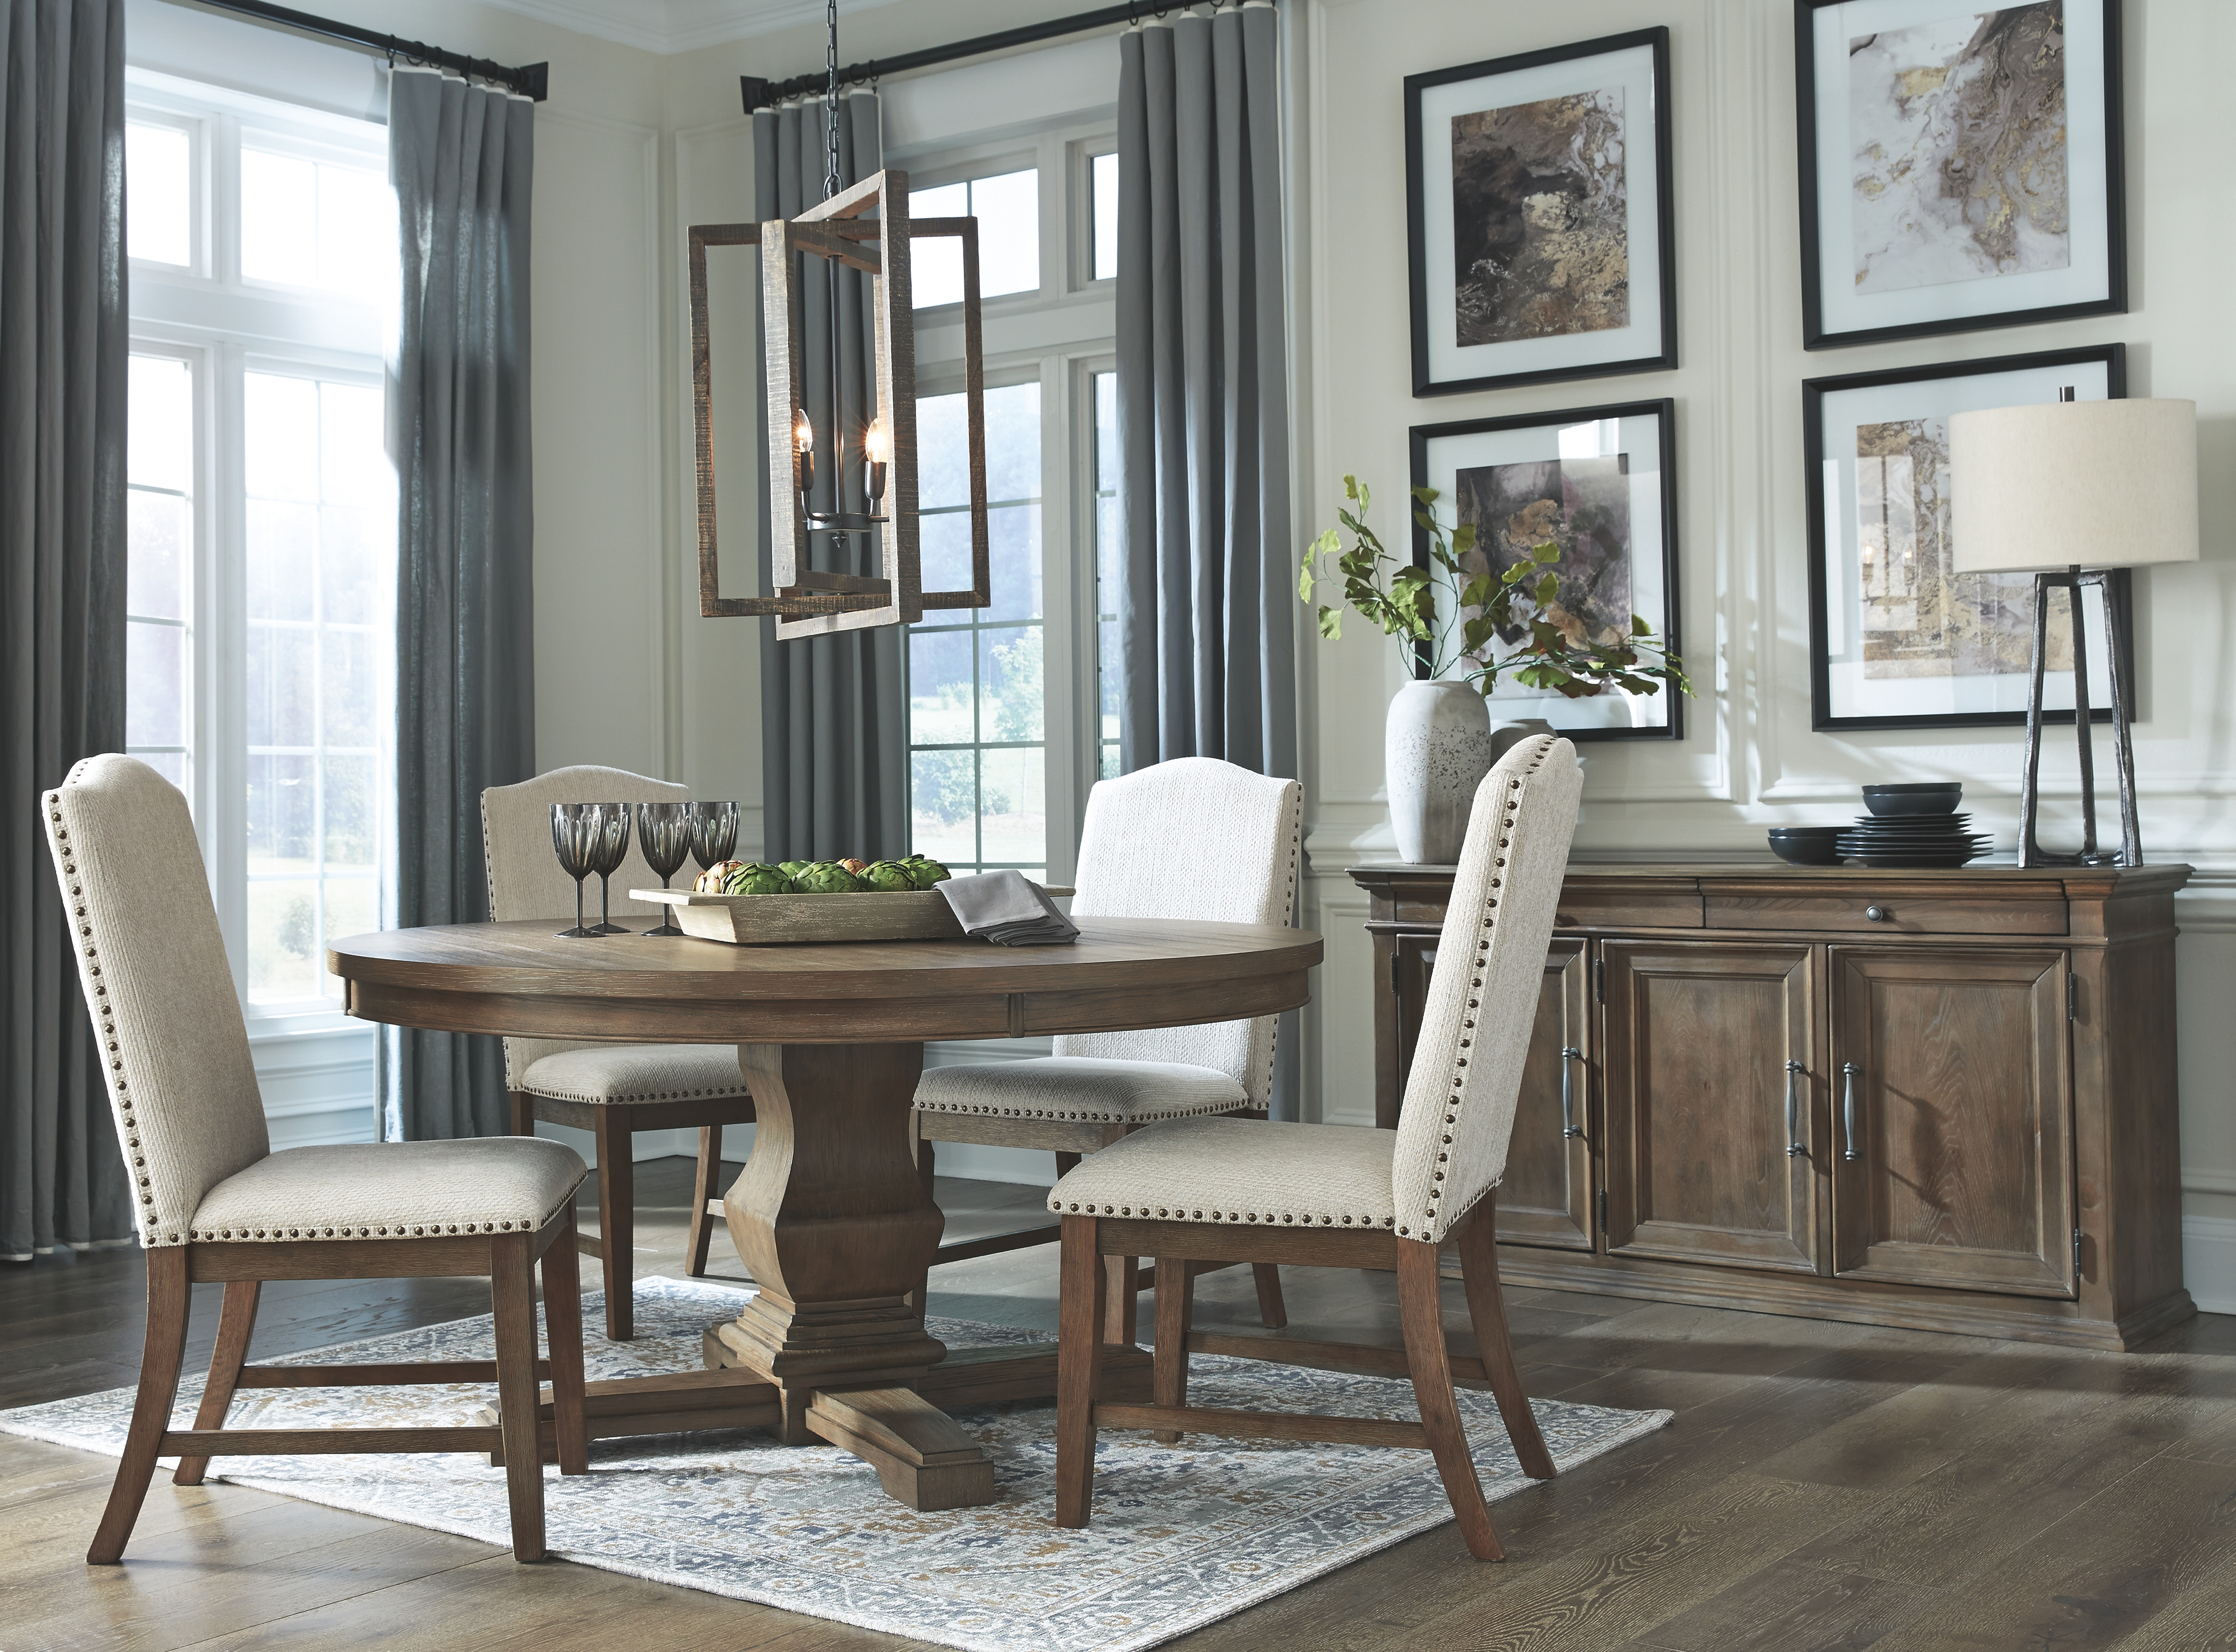 Johnelle Dining Room Table By Millennium By Ashley The Furniture Mall